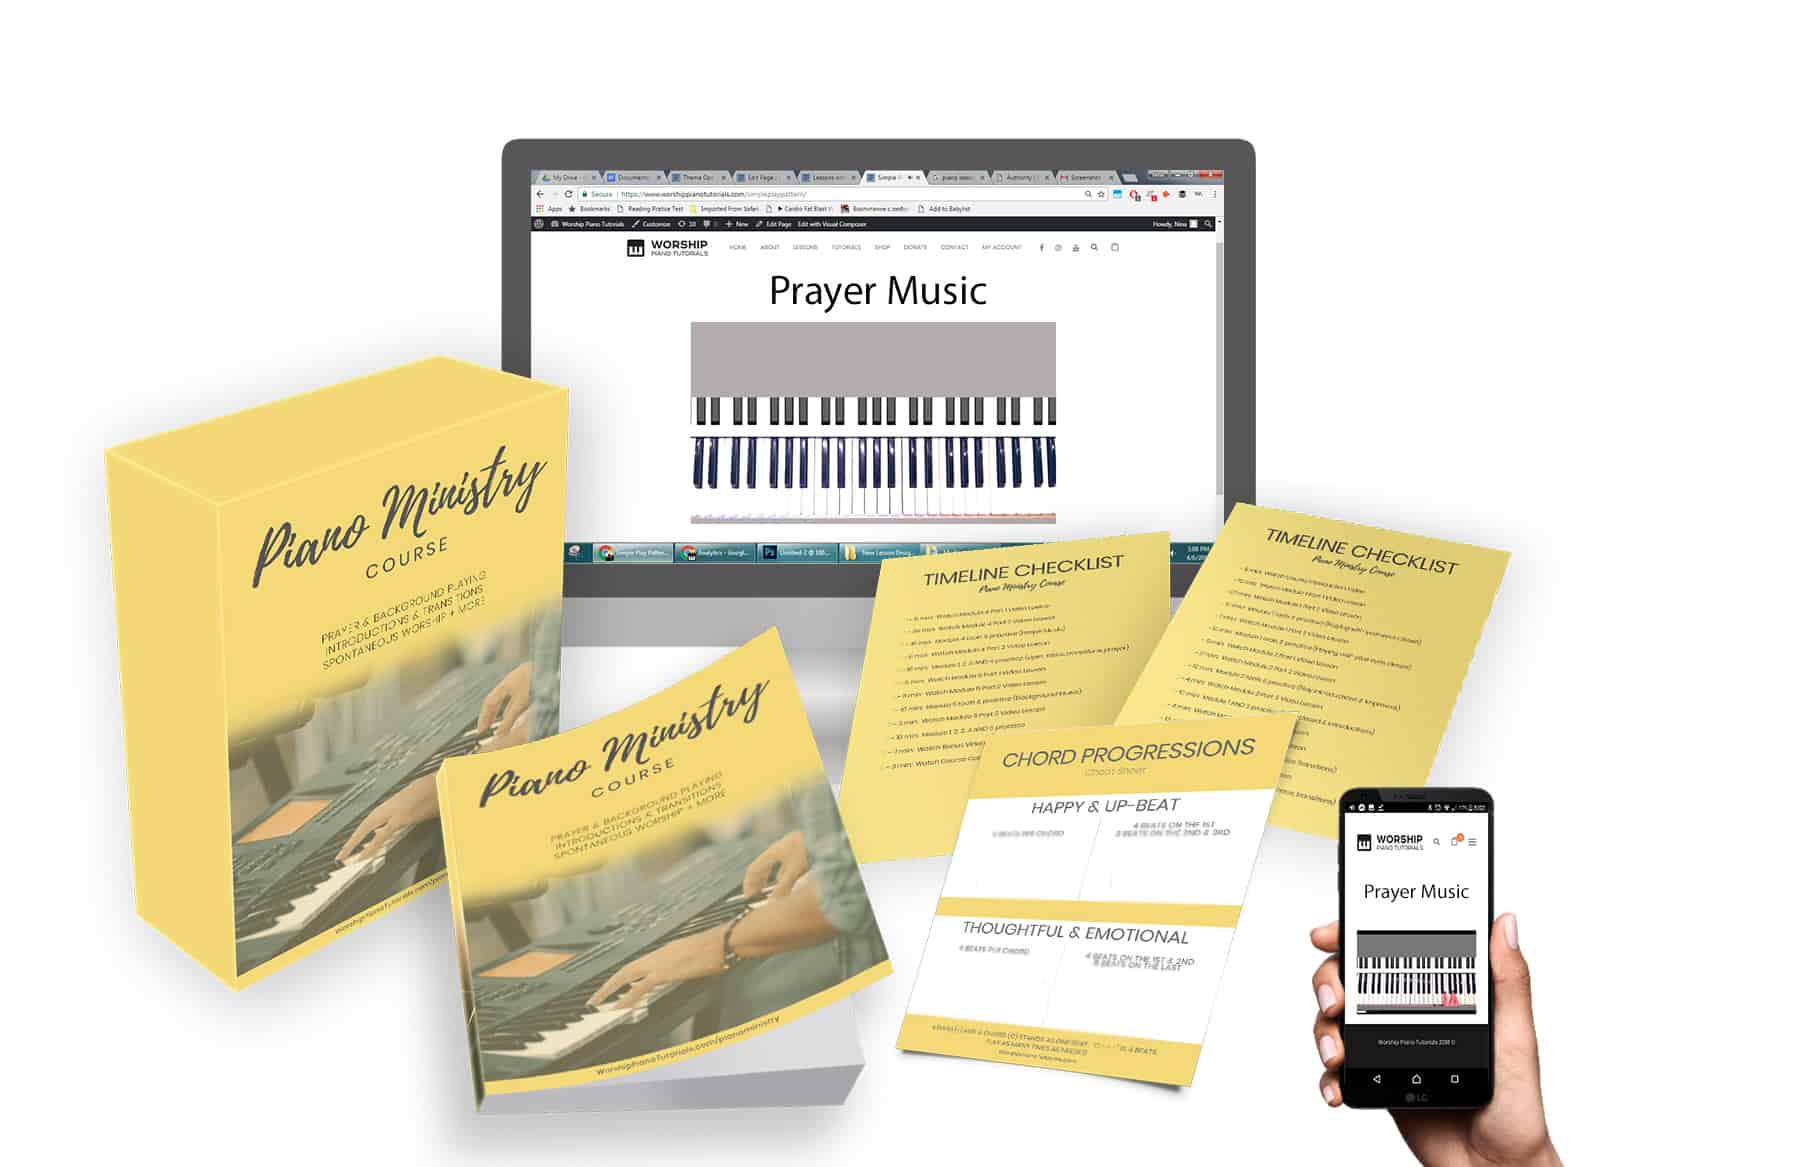 Piano Ministry Course